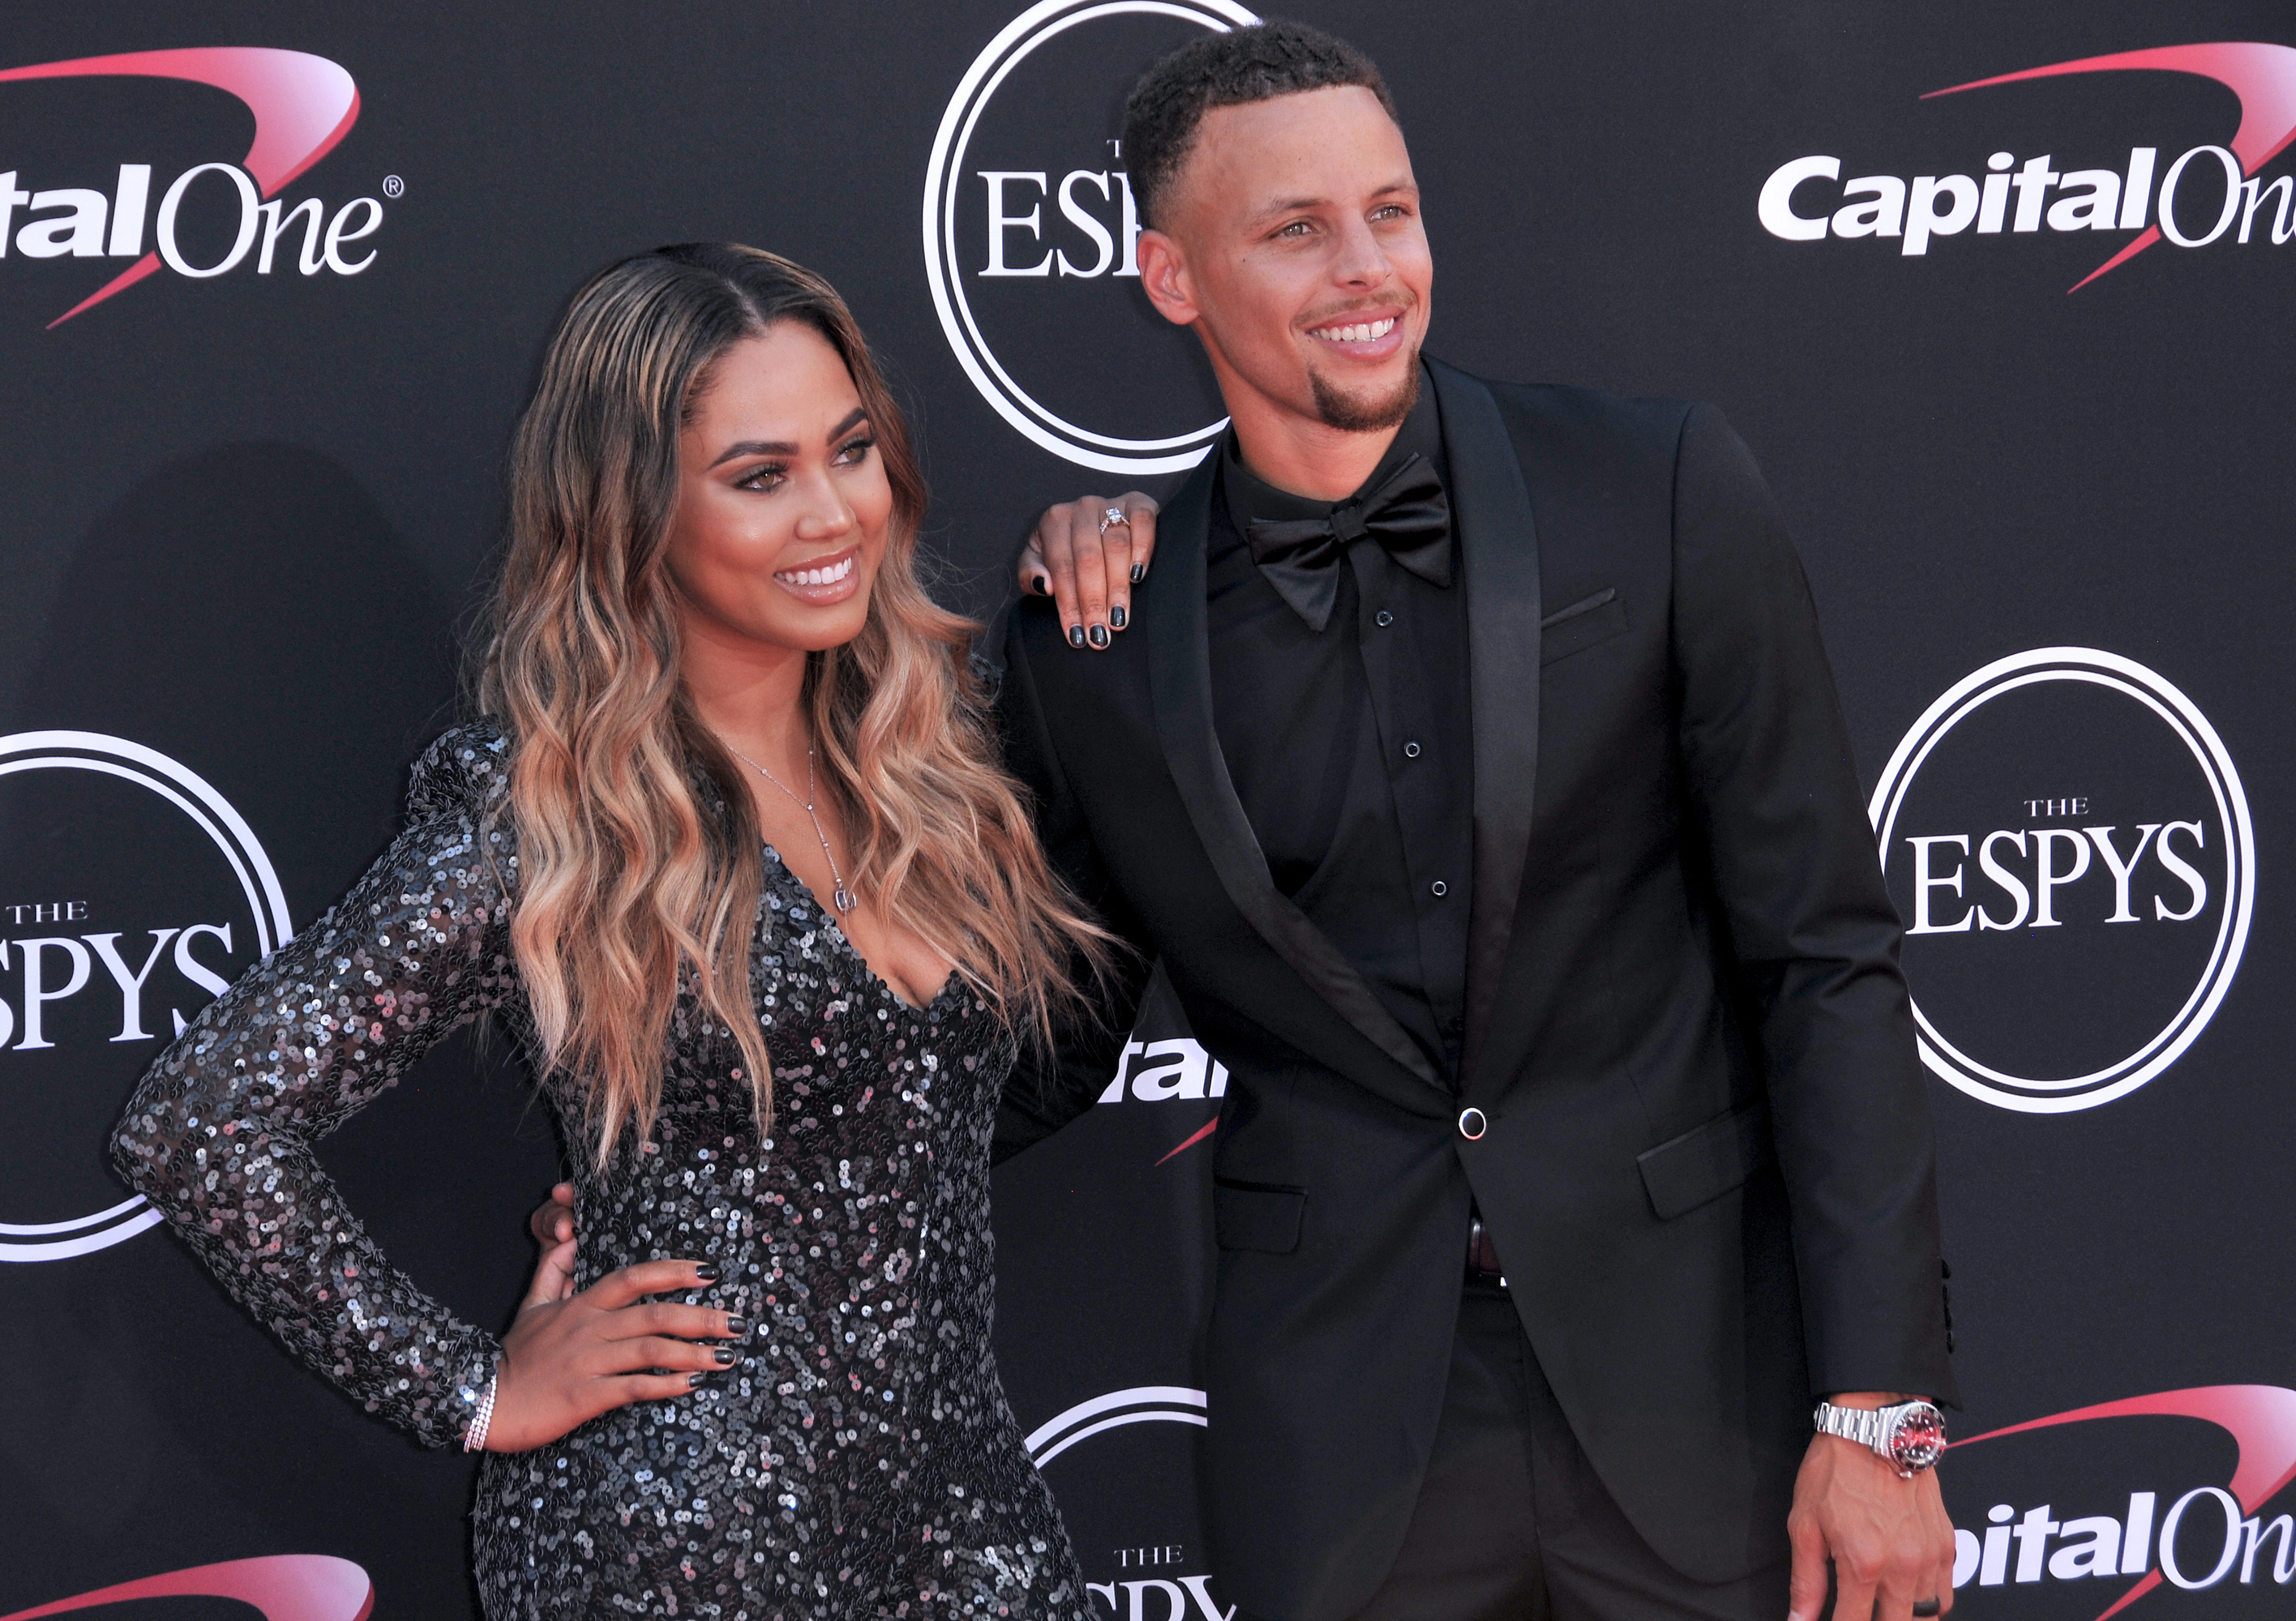 Ayesha Curry and Steph Curry